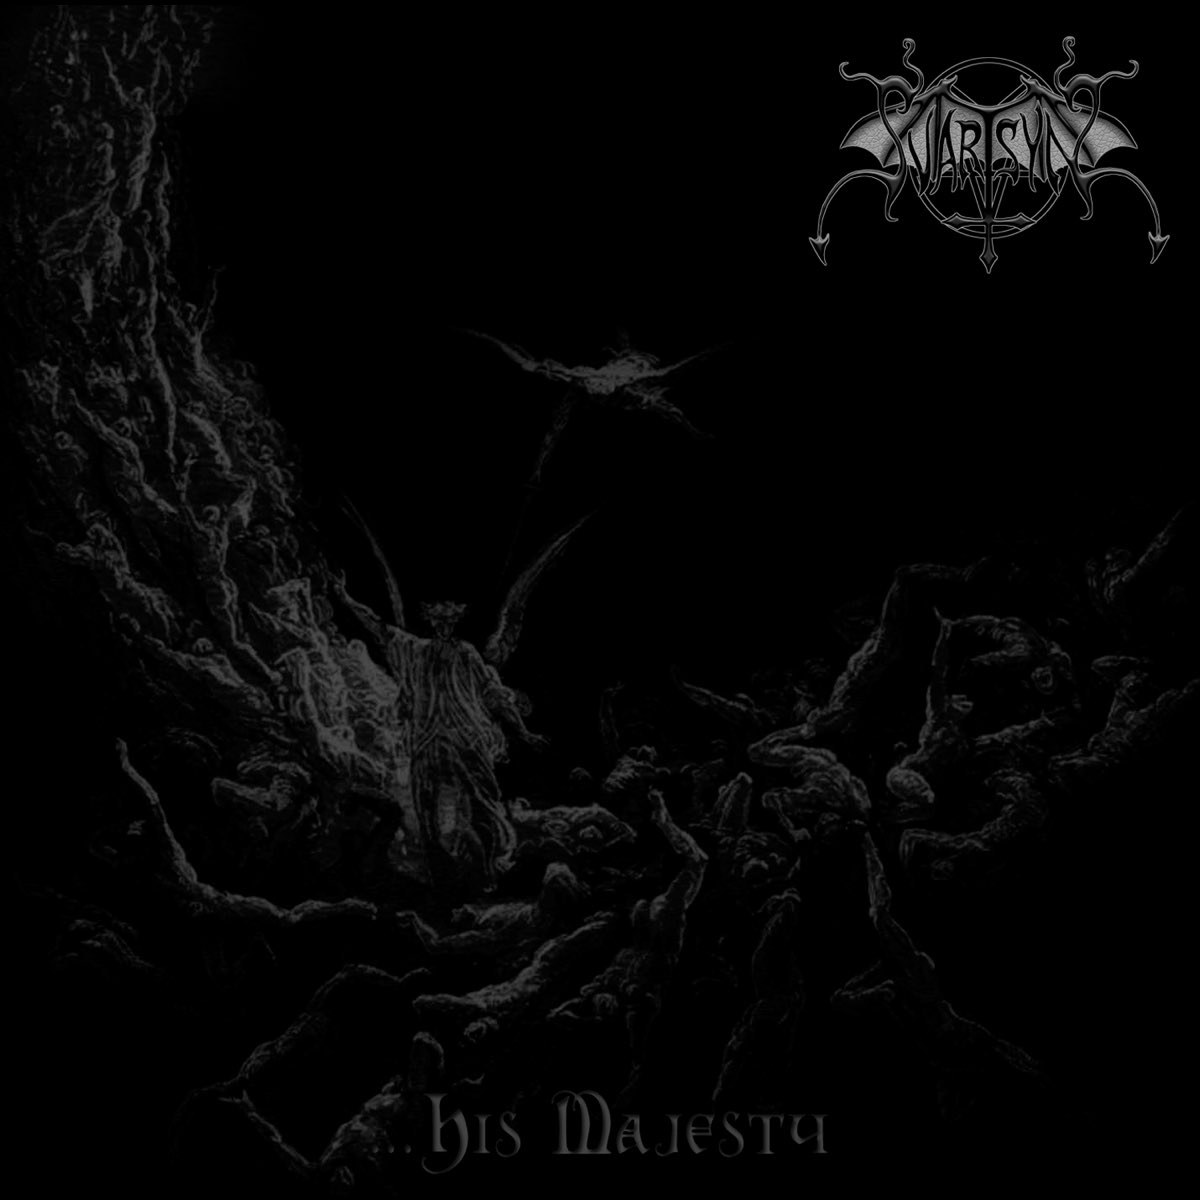 Review for Svartsyn (SWE) - ...His Majesty